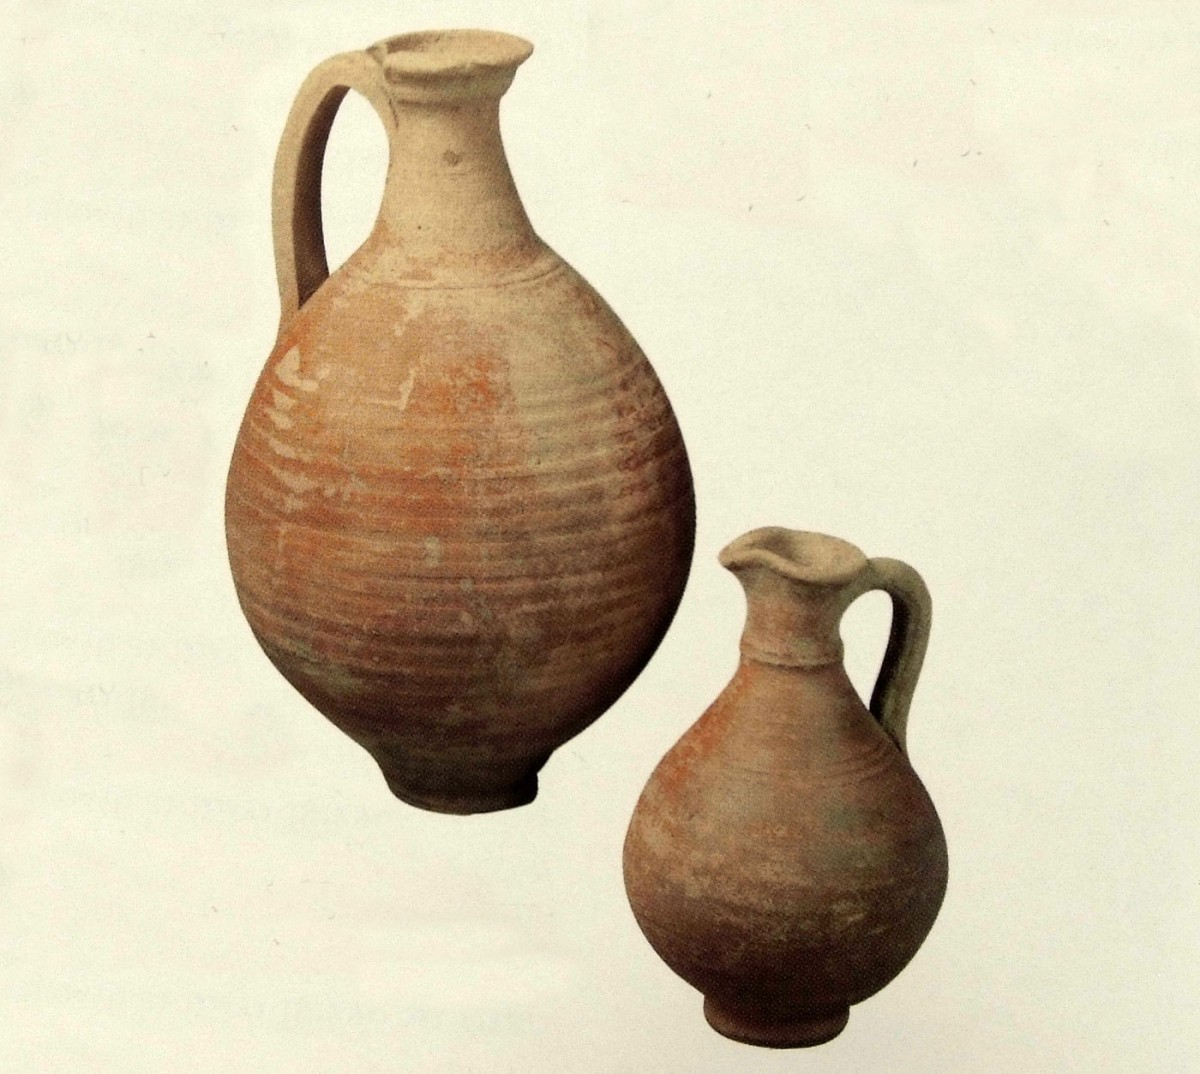 "Fig. 22. ""Ceramic pitchers"": they must have contained water for diluting wine (4th c. cooking utensils), Βυζαντινών Διατροφή και Μαγειρείαι (2005), p. 218."